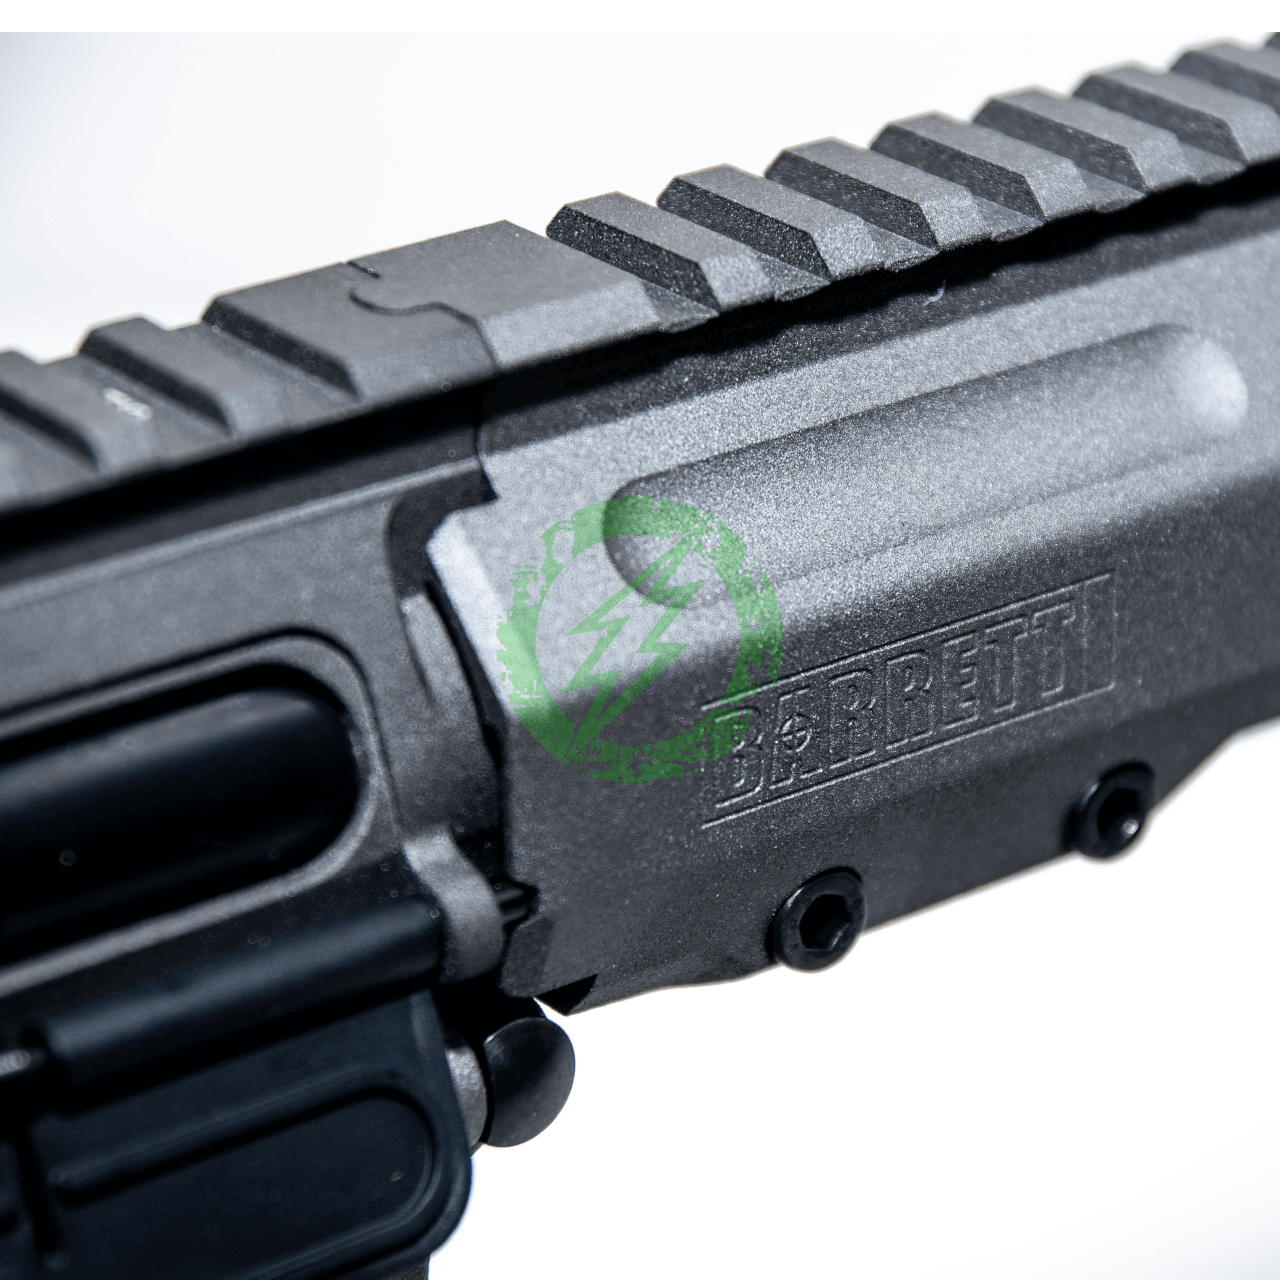 EMG Krytac Barrett Firearms REC7 DI AR15 AEG Training Rifle logo